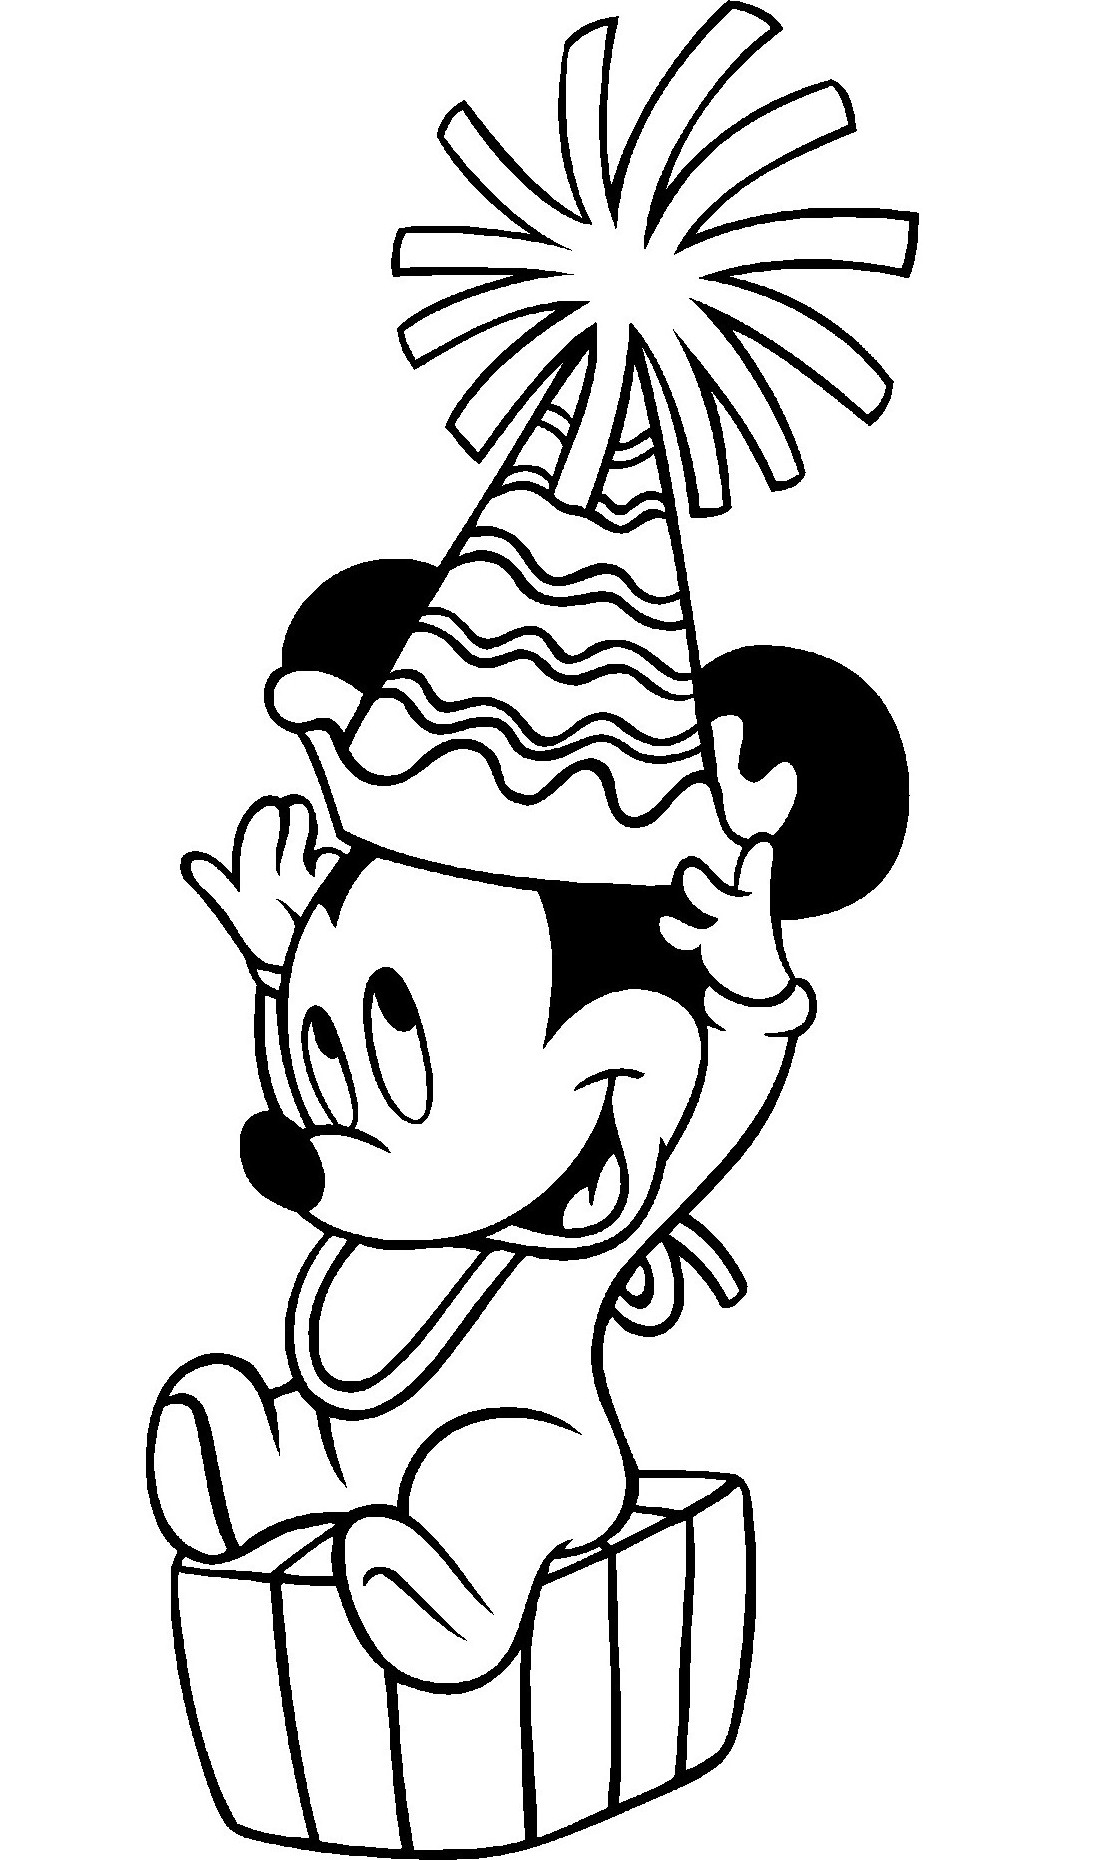 mickey mouse coloring pages printable - Coloring Pages Mickey Mouse